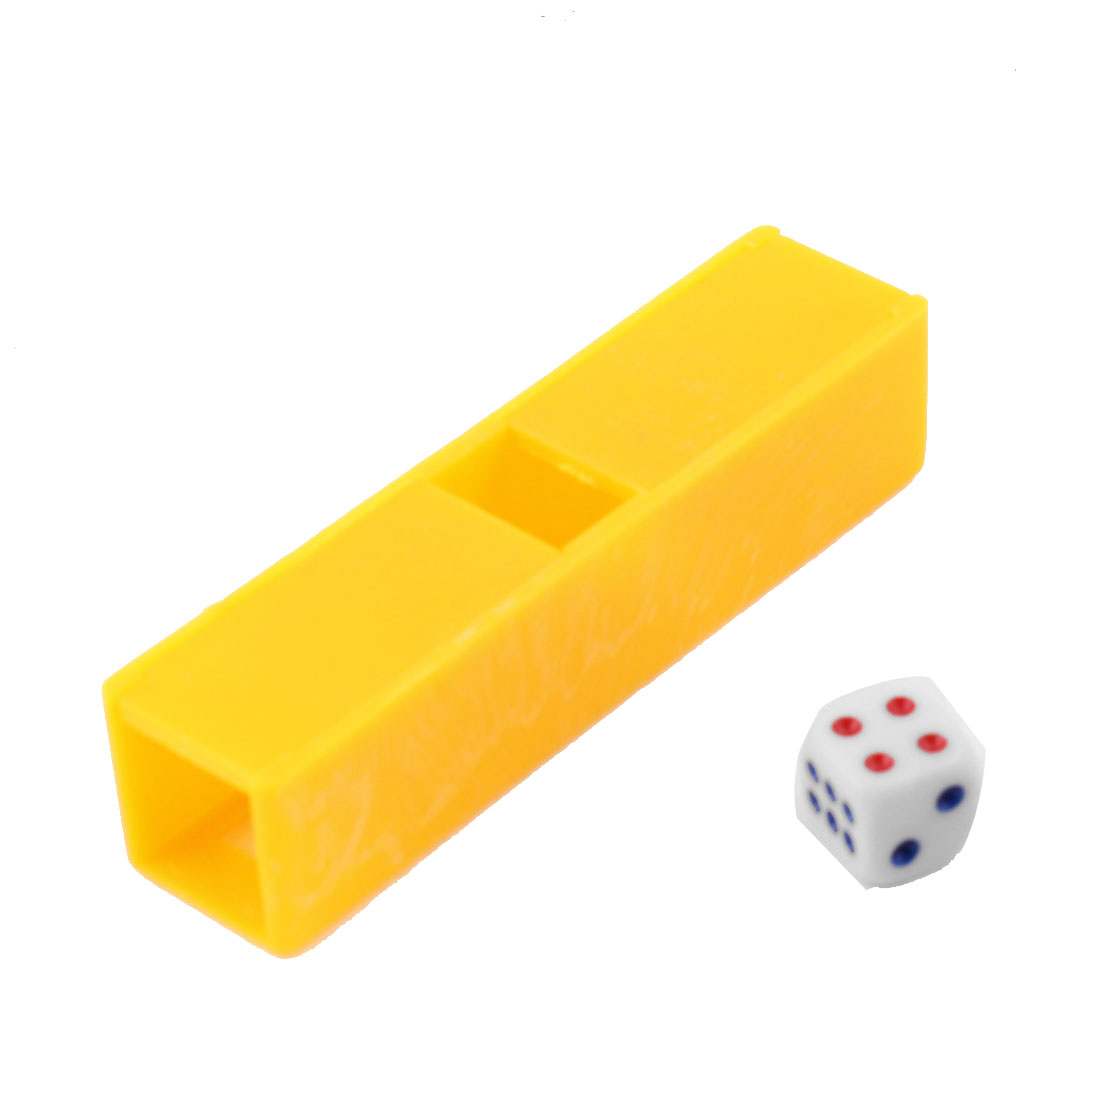 Party Magic Props Plastic Dice Tunnel Box Trick Tool Yellow